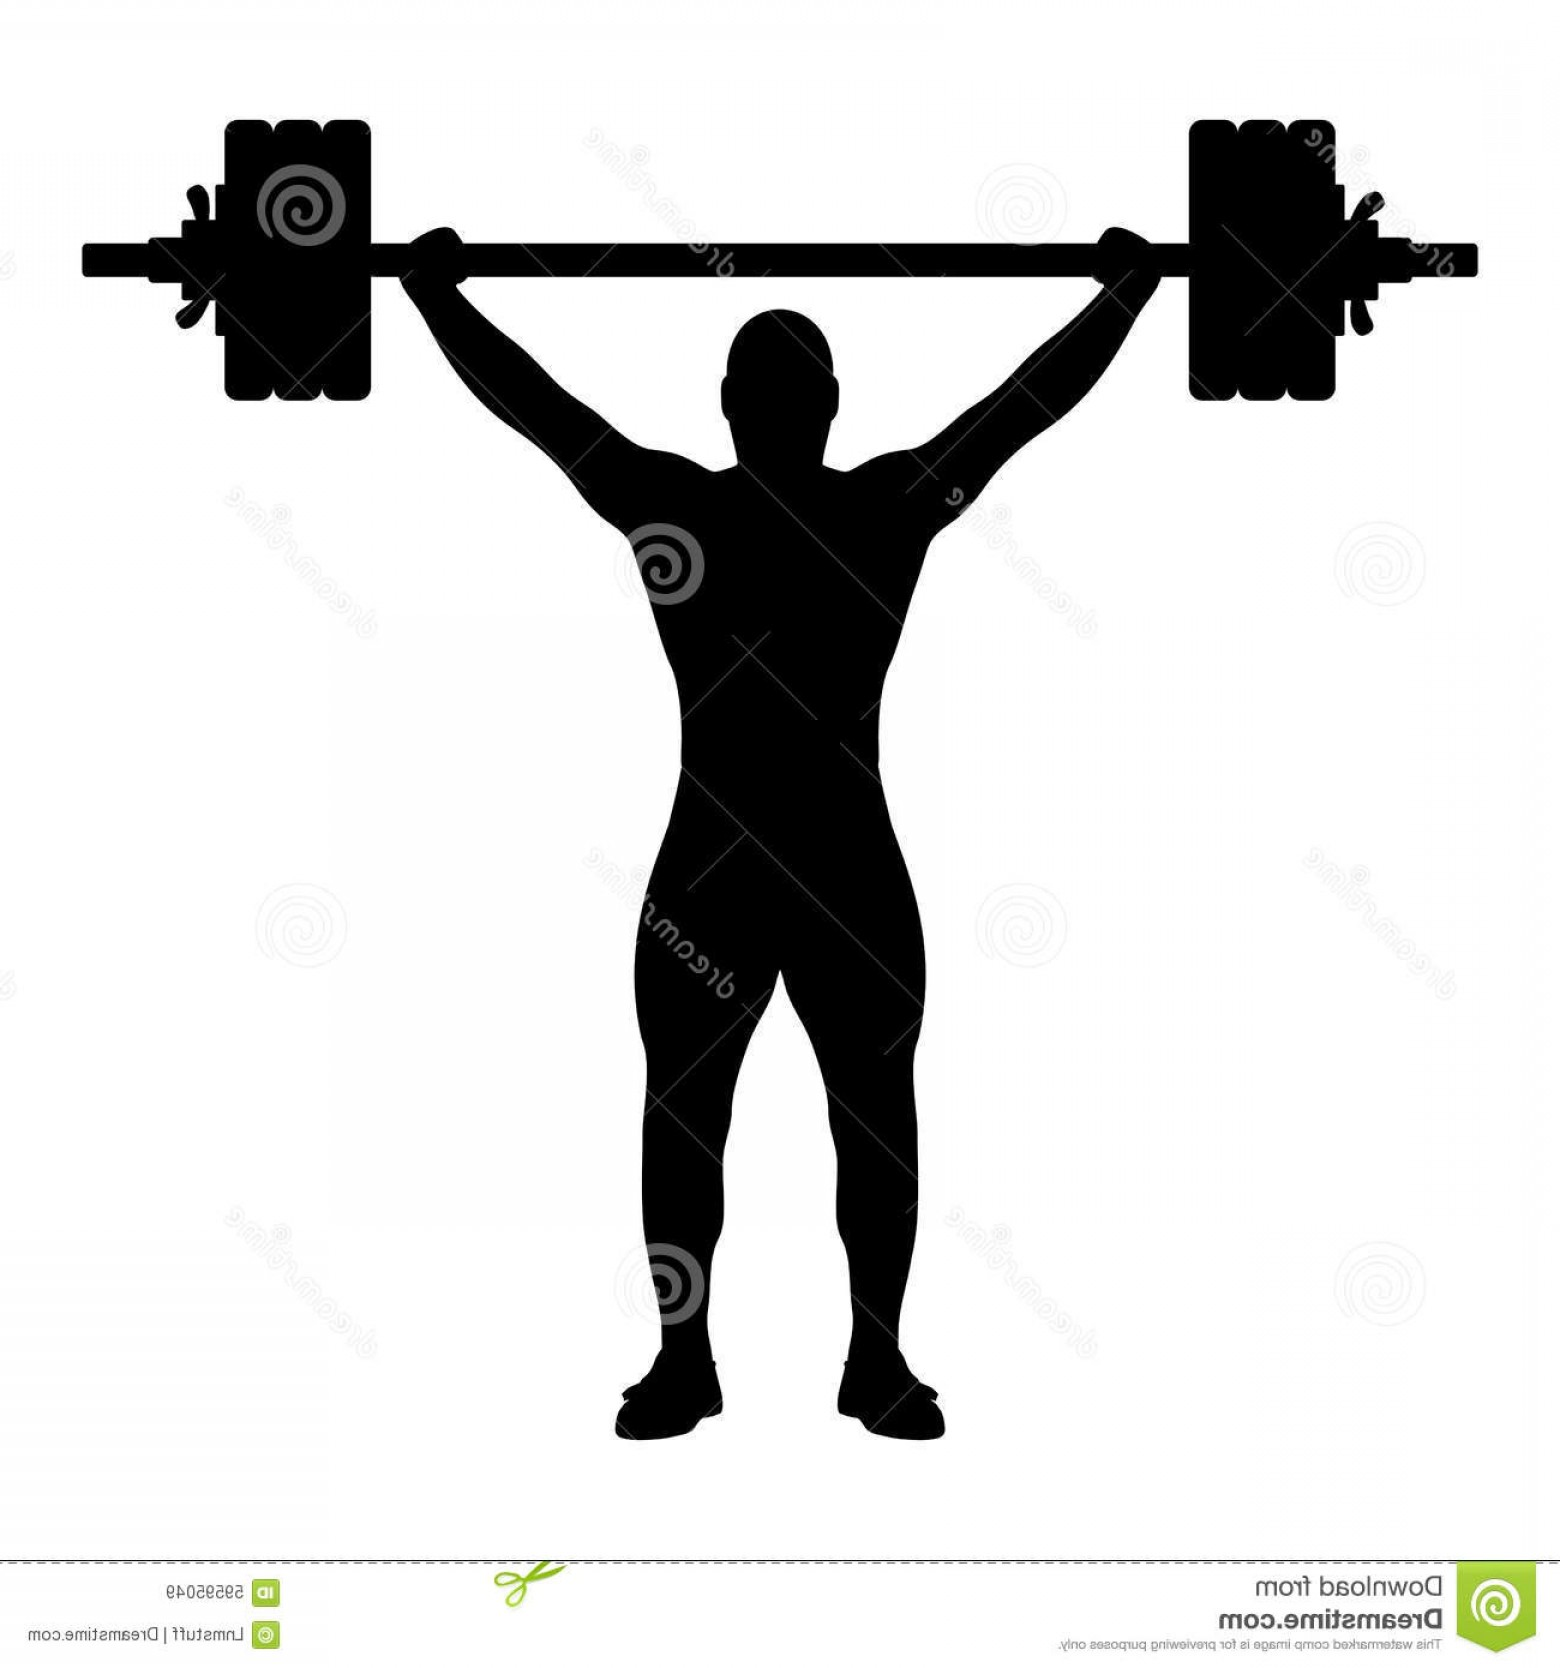 Vector Weight Lifting: Stock Illustration Weight Lifter Silhouette Vector Illustration Weightlifting Black White Background Editable Eps File Available Image